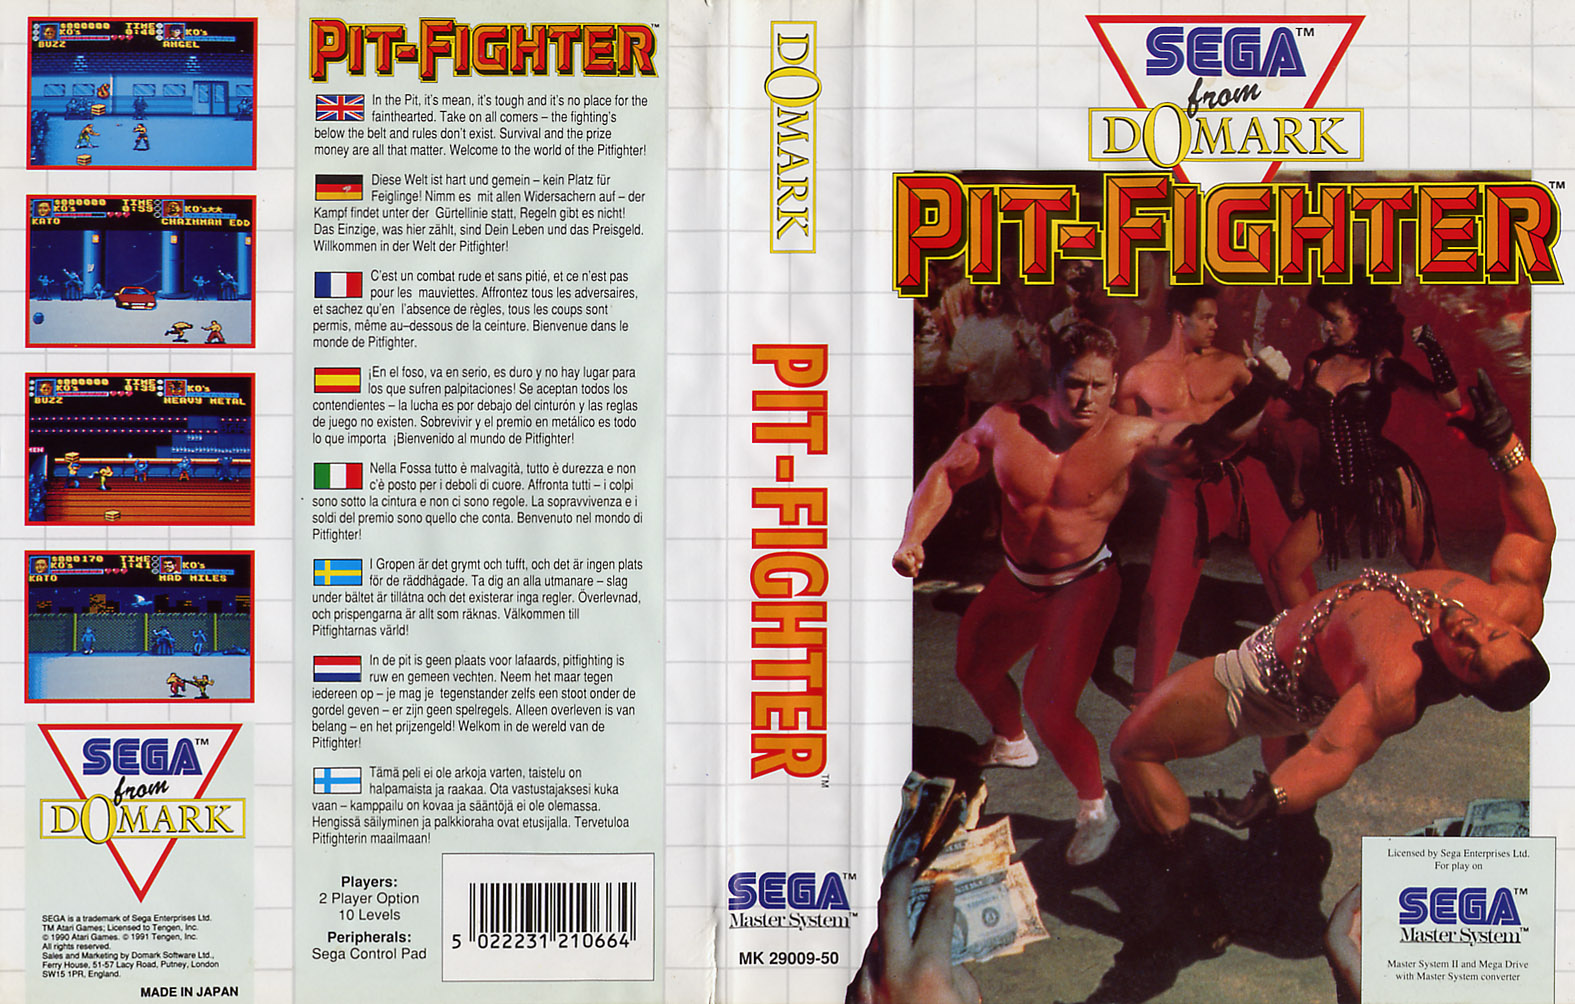 http://www.smspower.org/uploads/Scans/PitFighter-SMS-EU.jpg